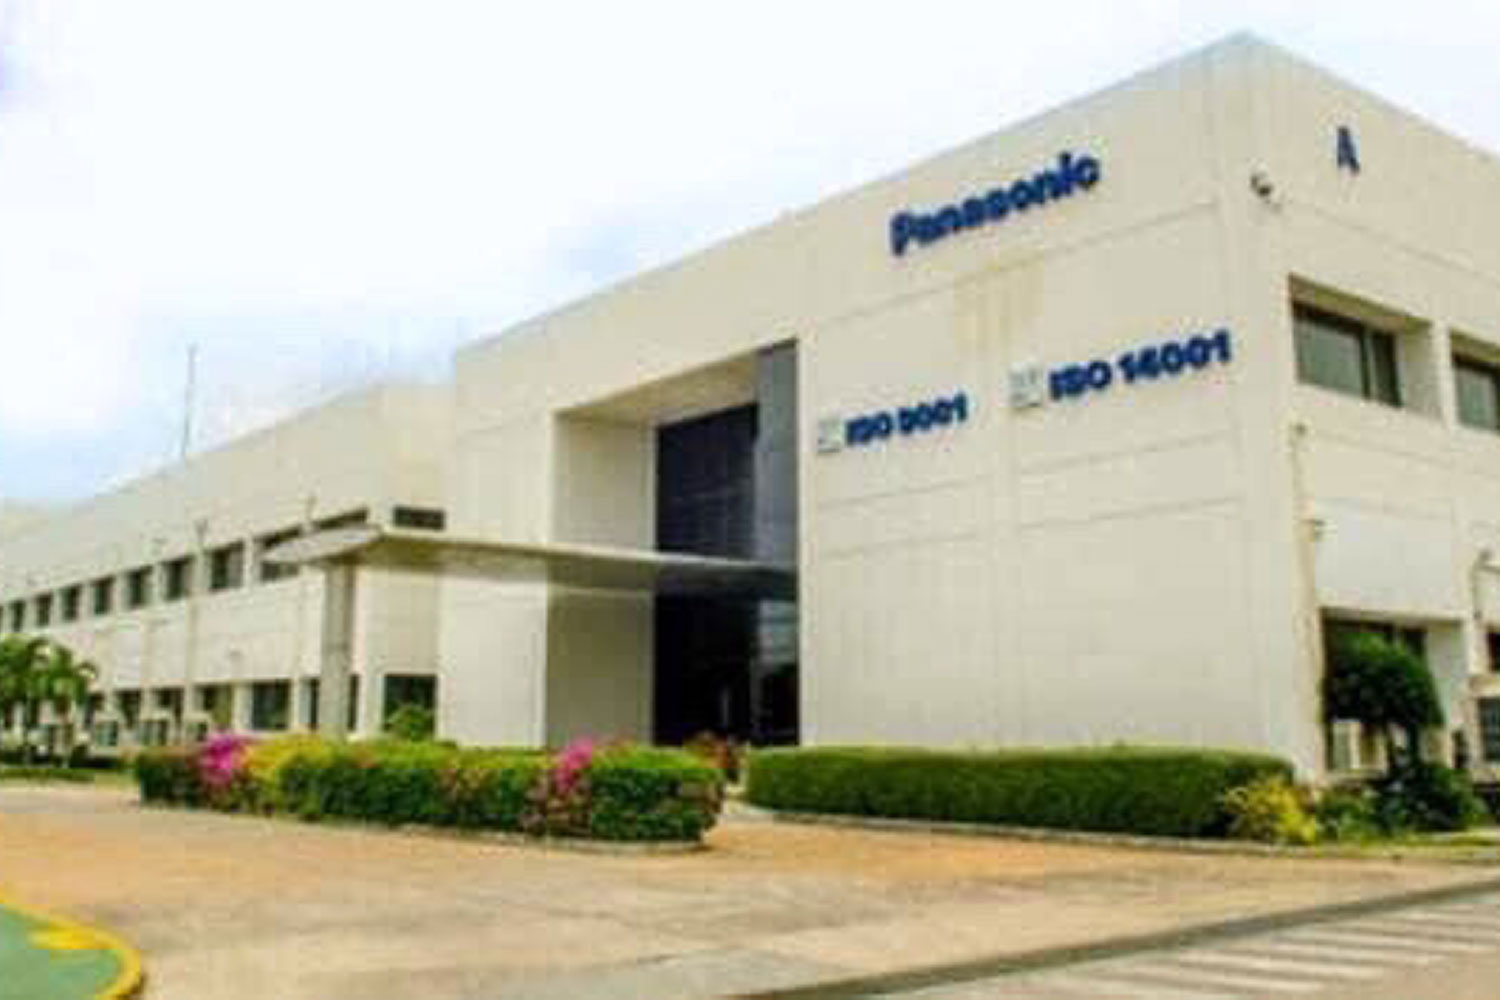 The Panasonic Appliances Thailand's factories at Wellgrow Industrial Estate, scheduled to close later this year.